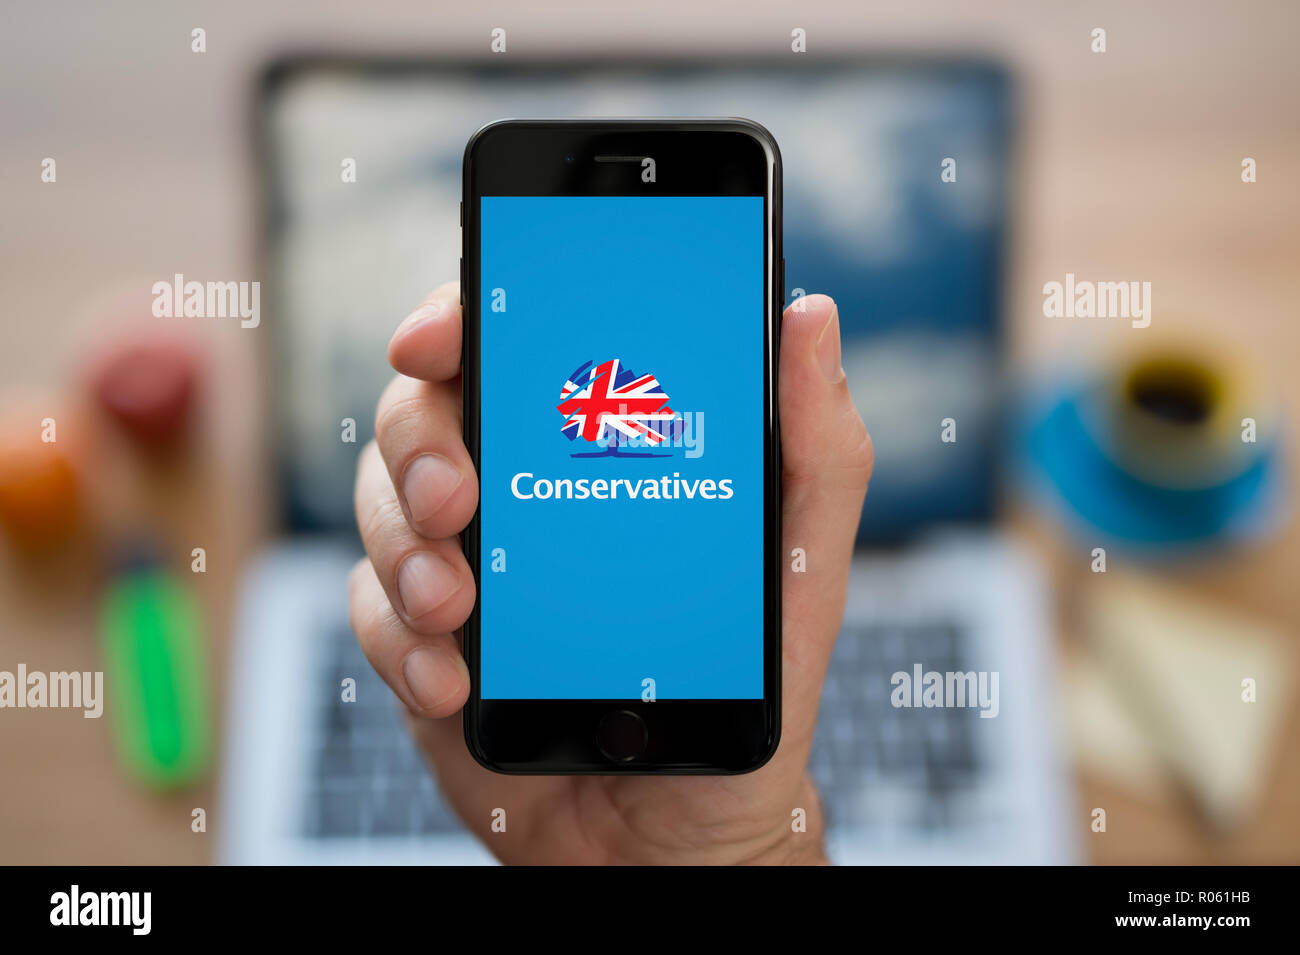 A man looks at his iPhone which displays the Conservative Party logo, while sat at his computer desk (Editorial use only). - Stock Image